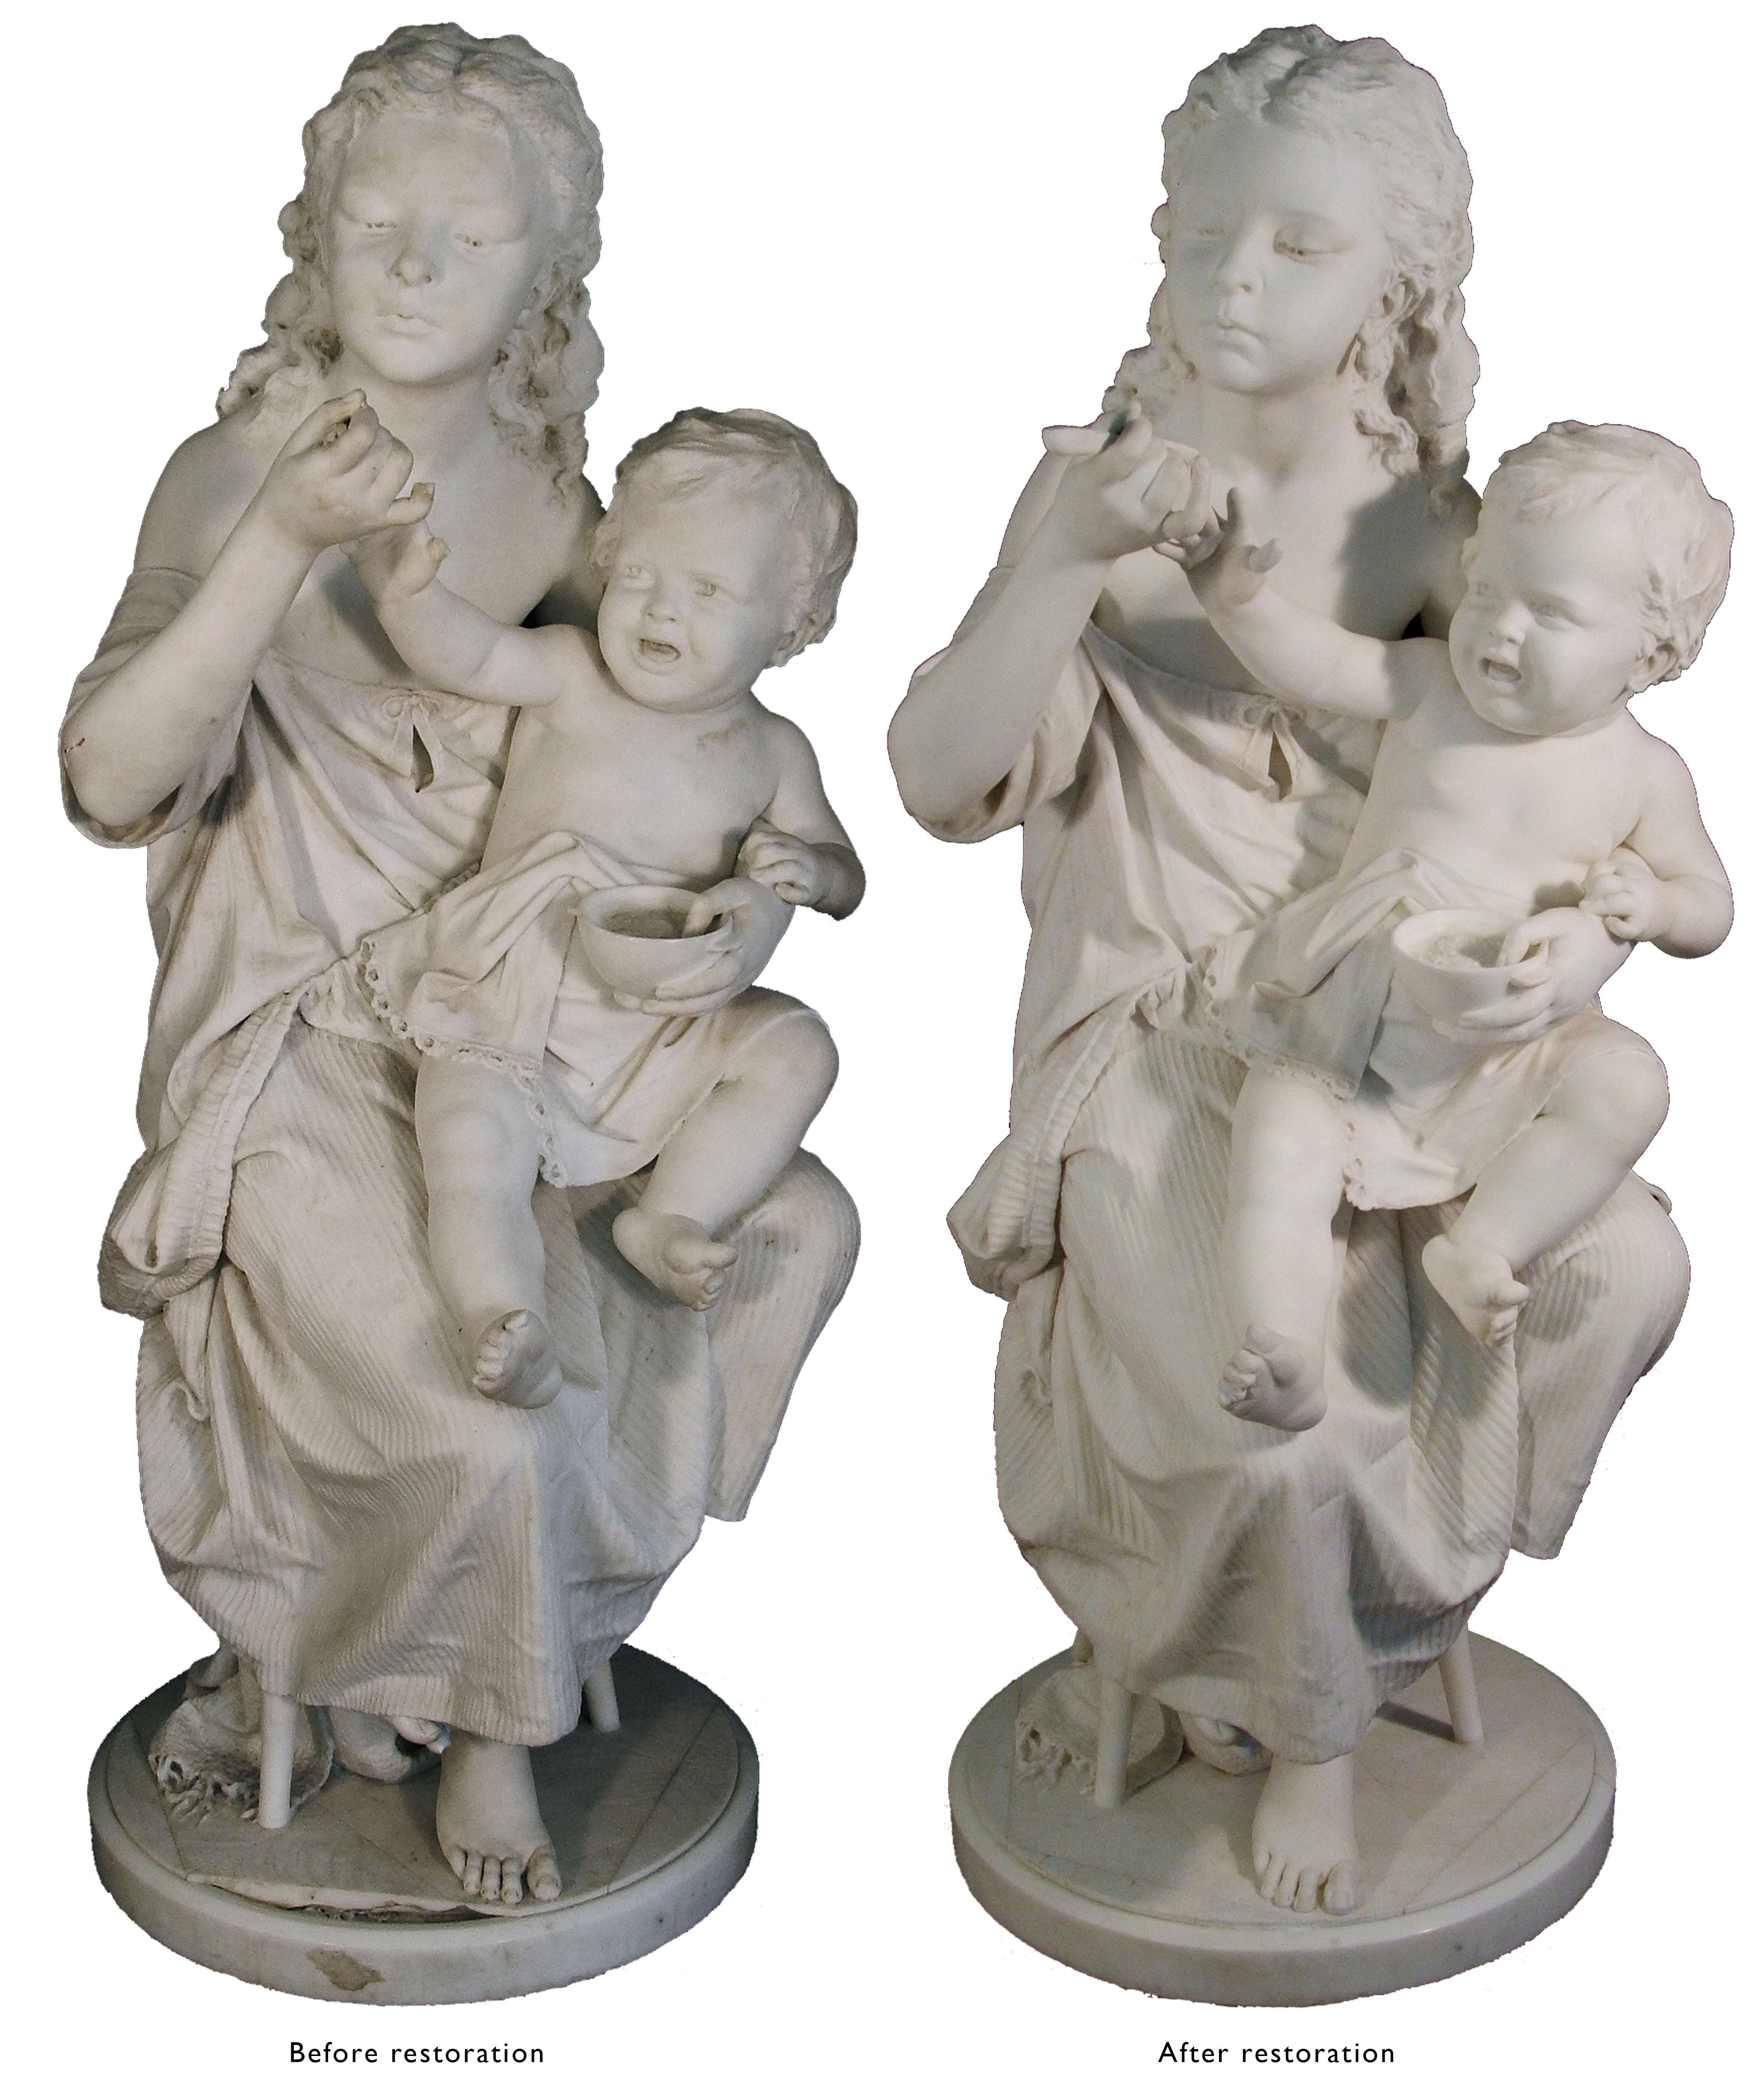 Statue of The Orphans, before and after restoration